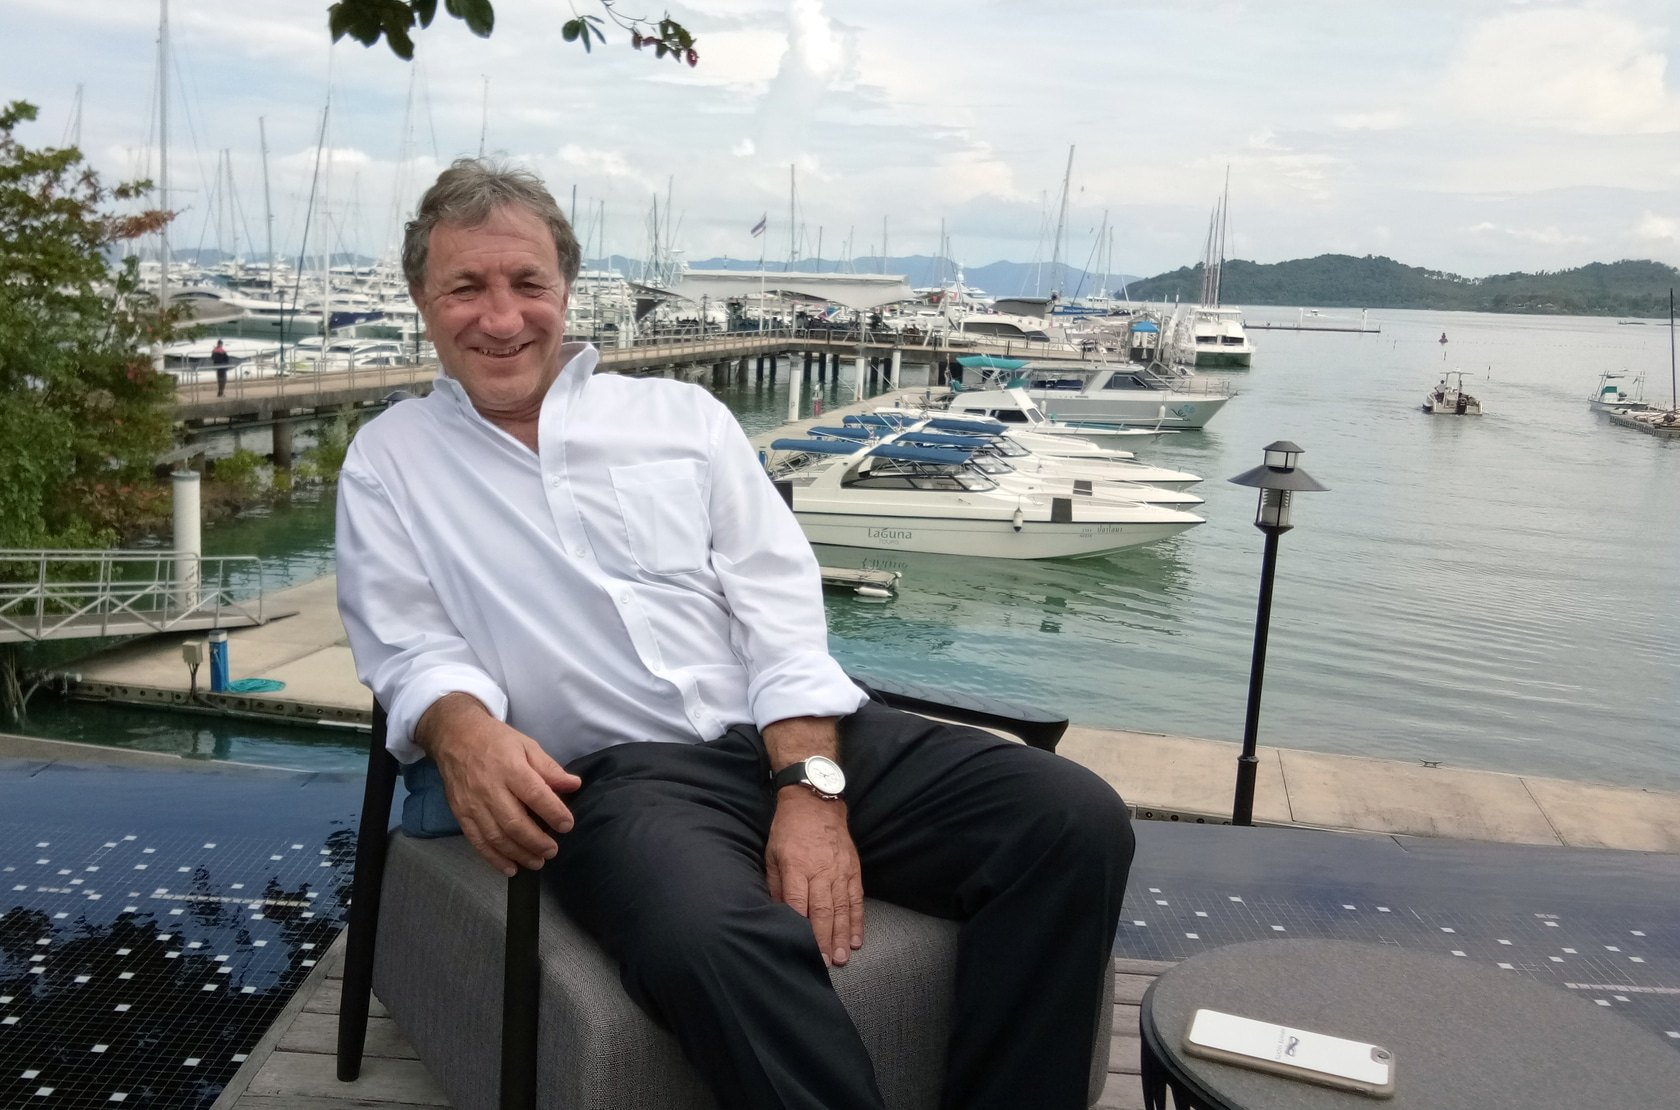 Thailand Yacht Show – attracting Superyachts to the region   The Thaiger